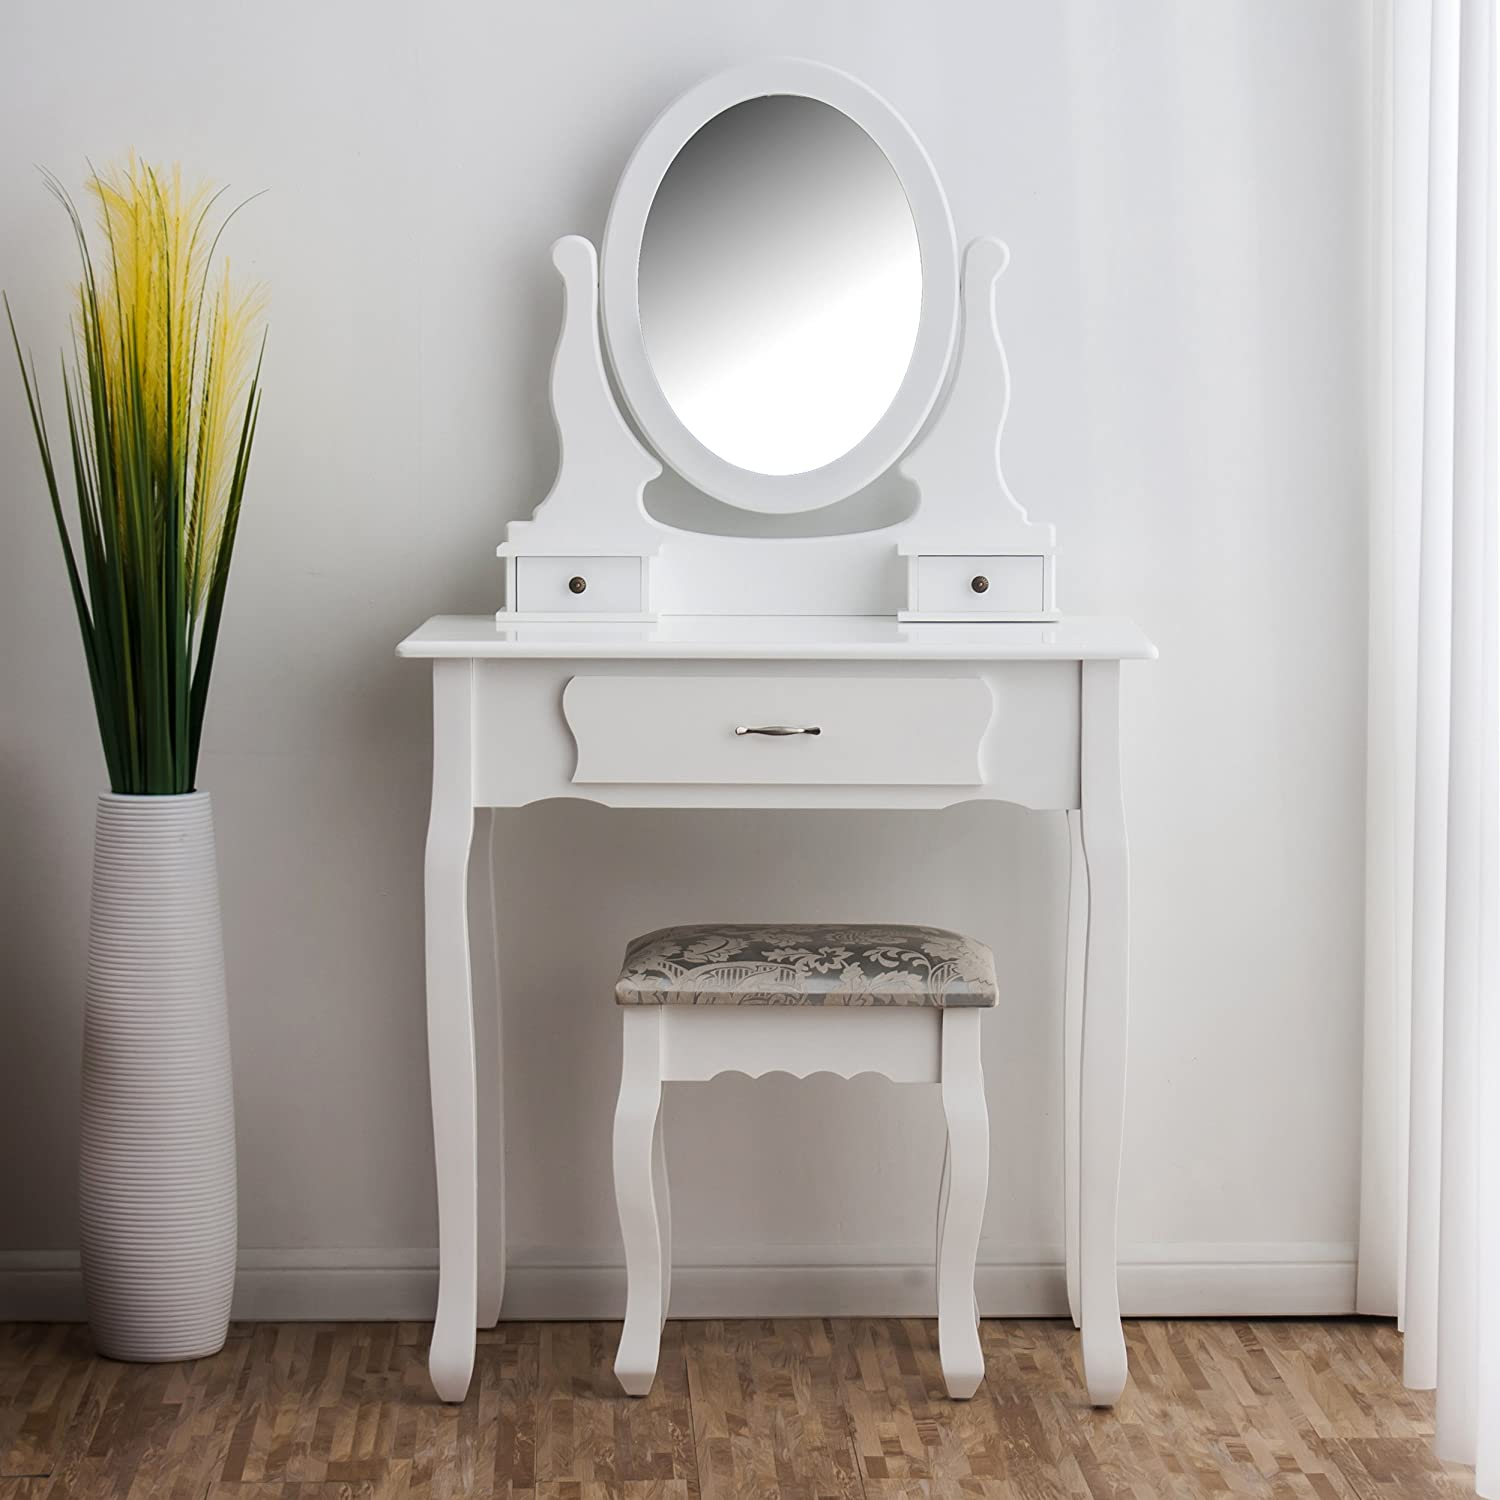 Amazon.co.uk: Dressing Tables: Home & Kitchen